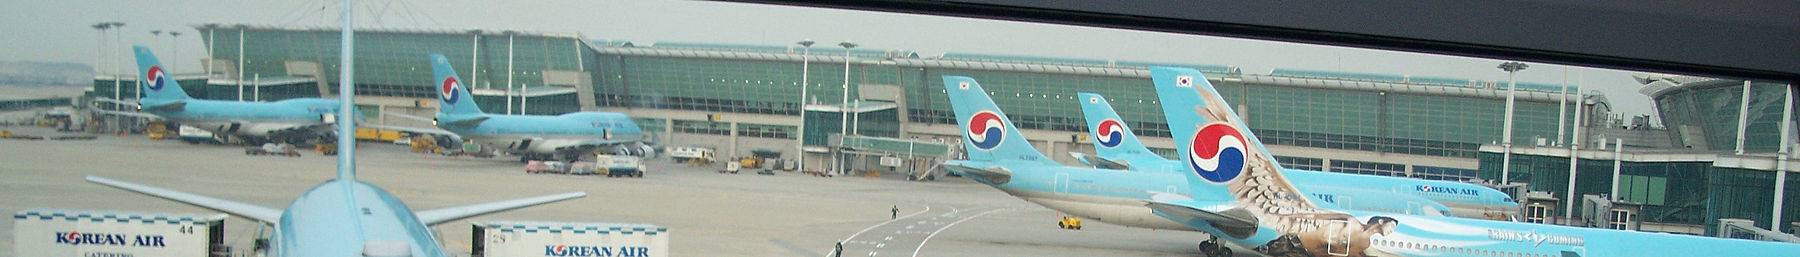 Incheon banner Airport.jpg